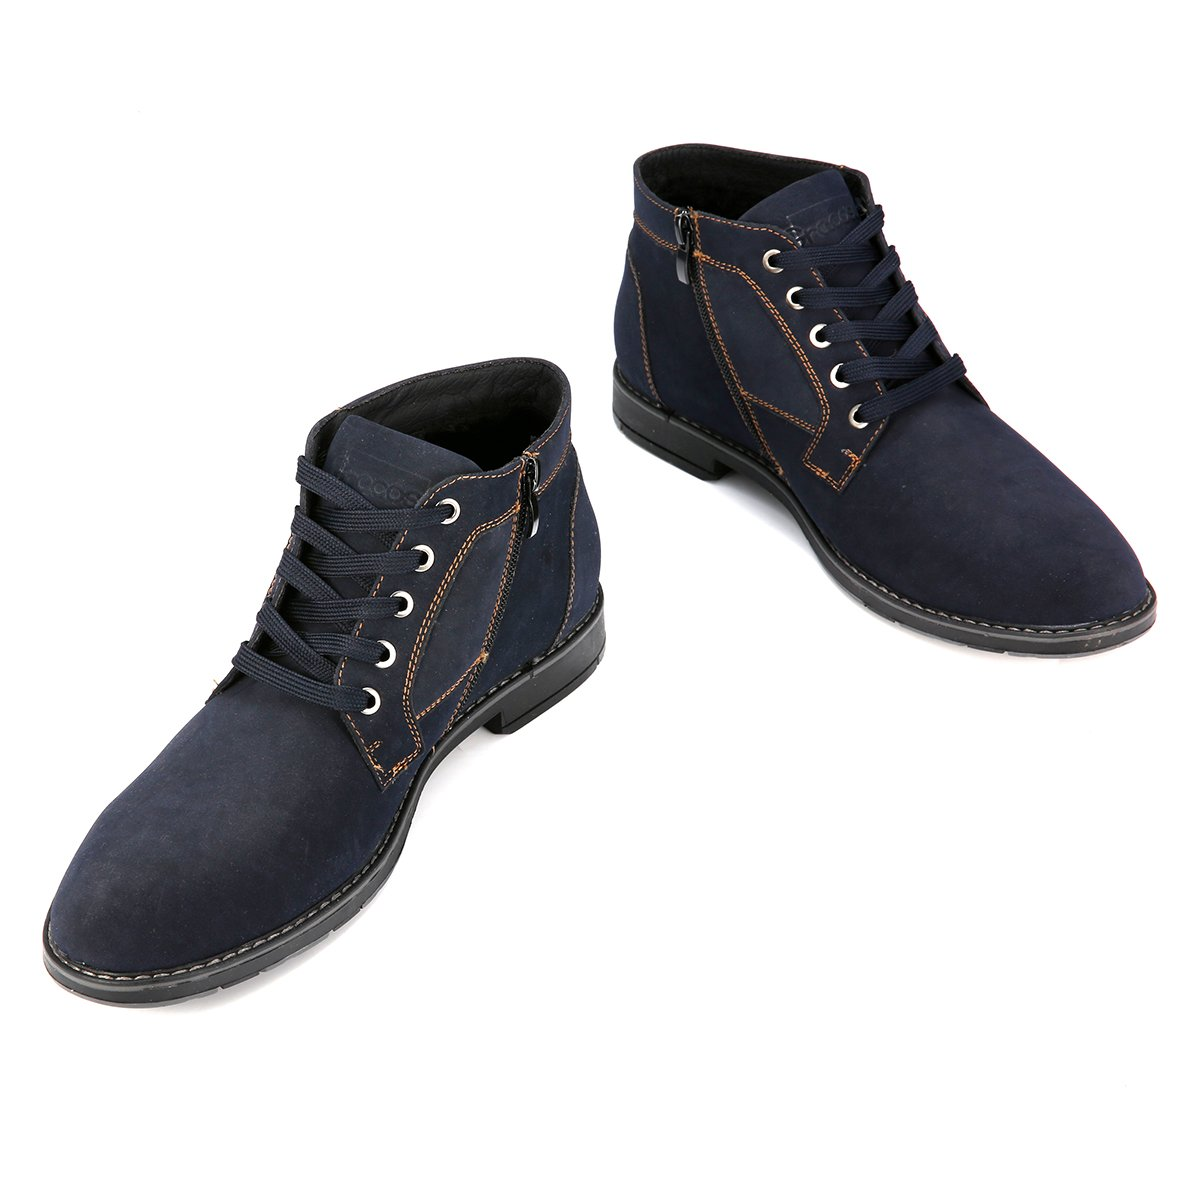 Amazon.com   gracosy Mens Desert Boots, Mens Classic Handmade High Top Lace up Chukka Boot Suede Casual Shoes   Chukka